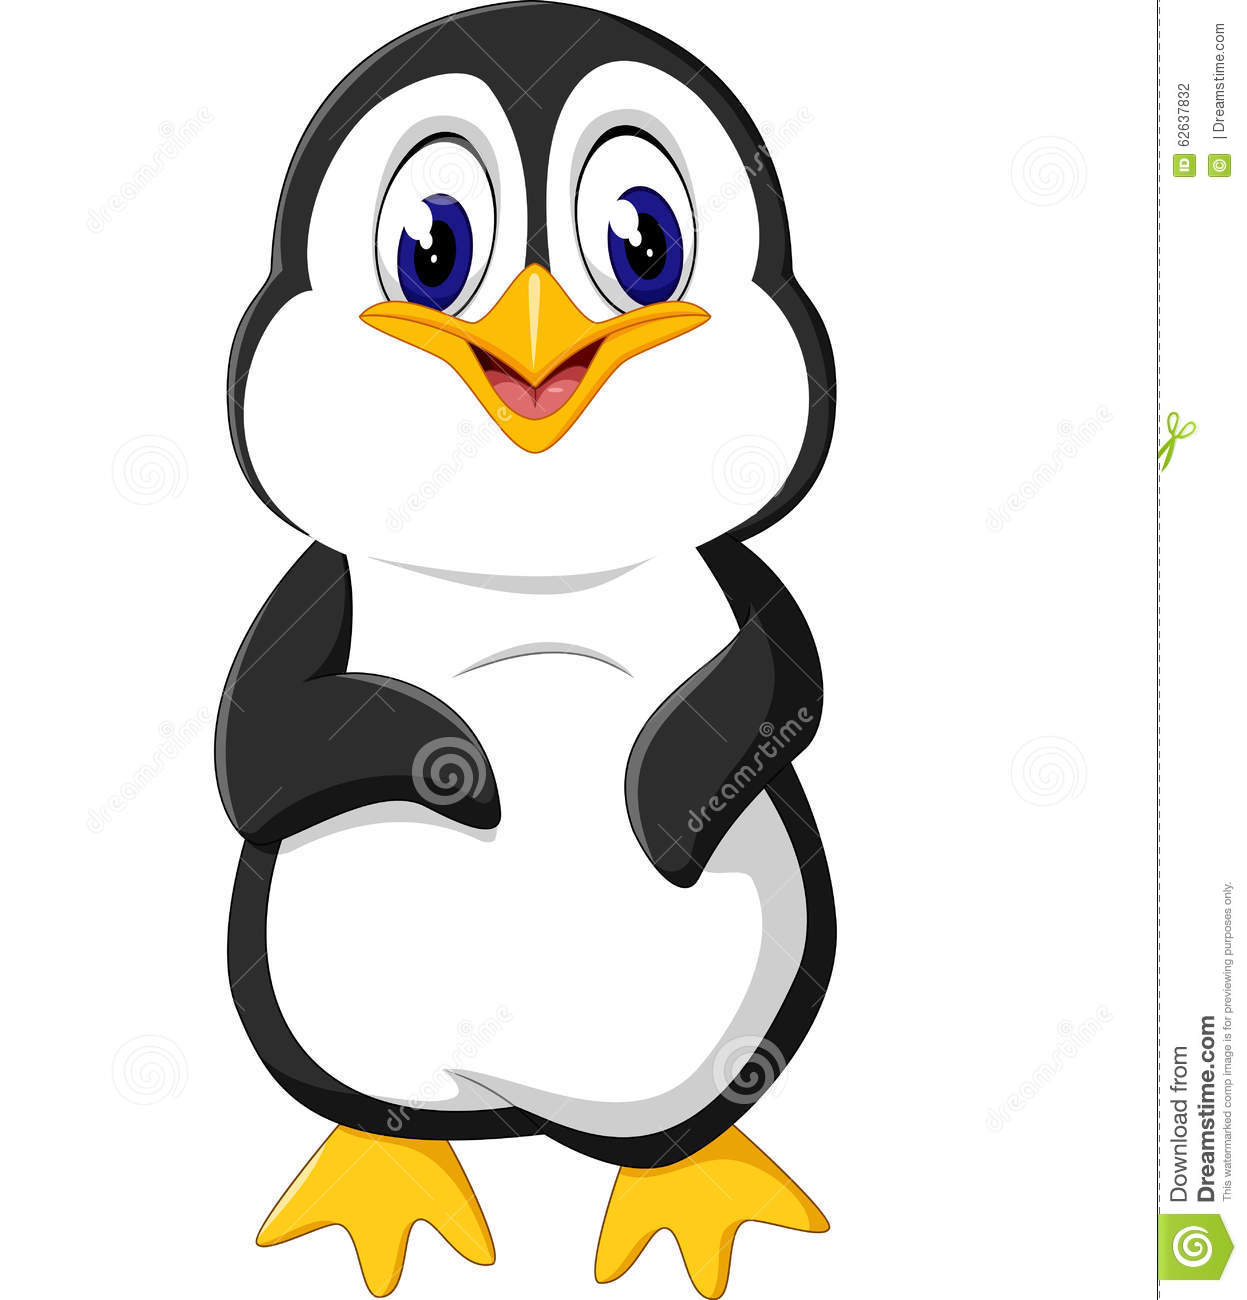 Cute Penguin Cartoon Stock Vector - Image: 62637832